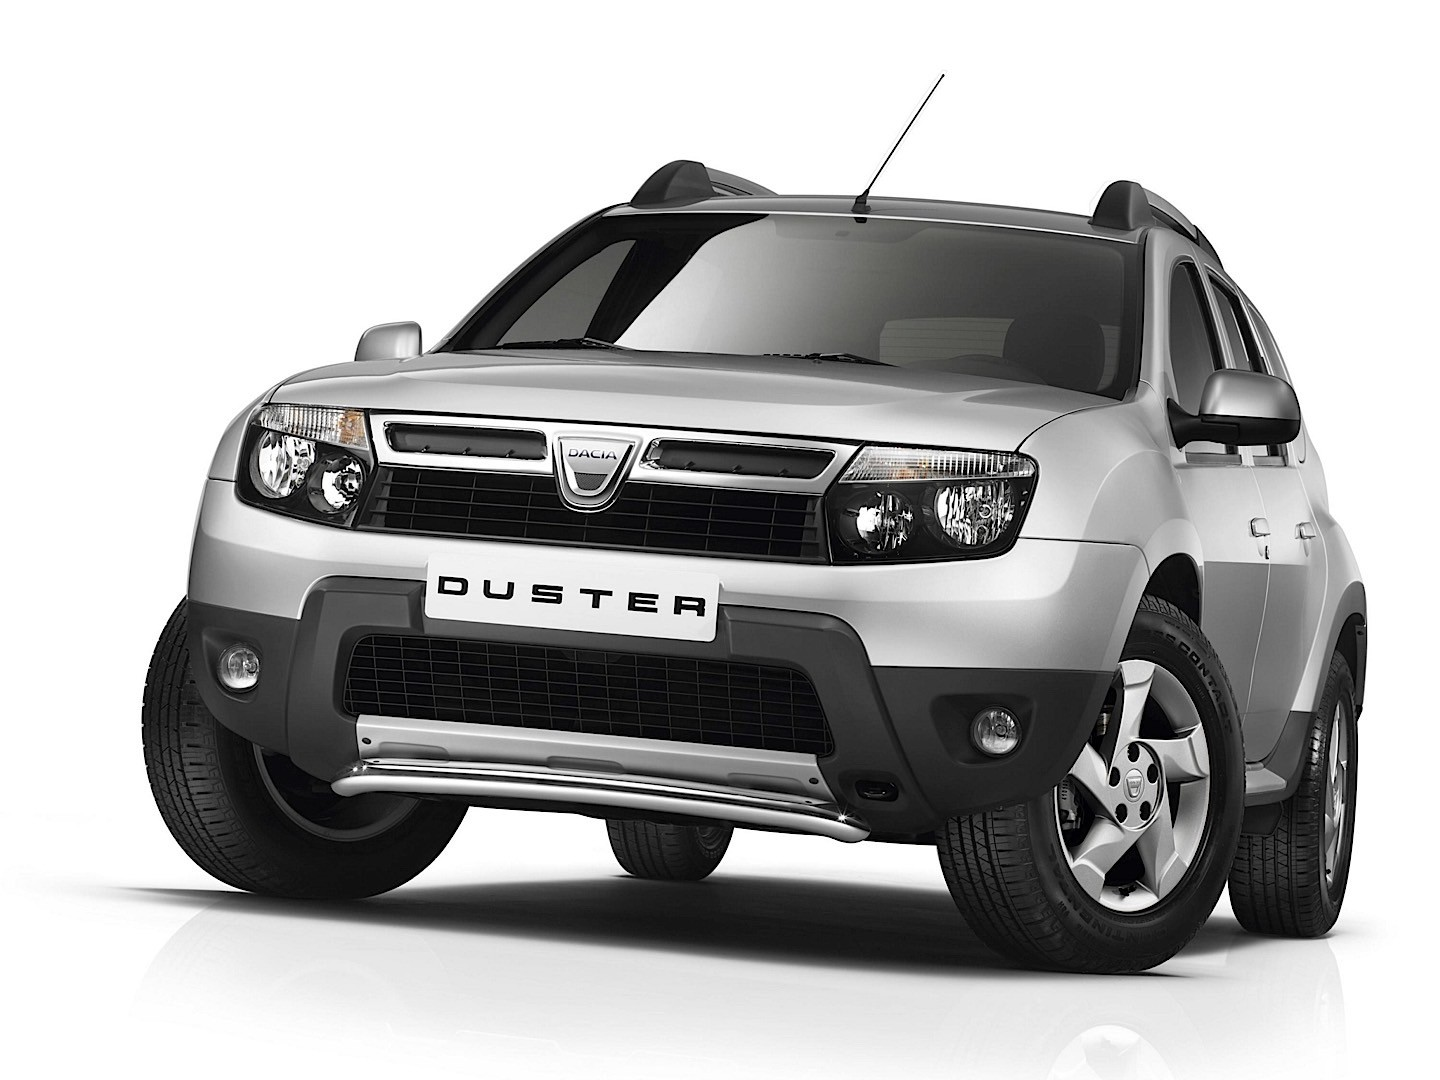 dacia duster specs photos 2010 2011 2012 2013. Black Bedroom Furniture Sets. Home Design Ideas